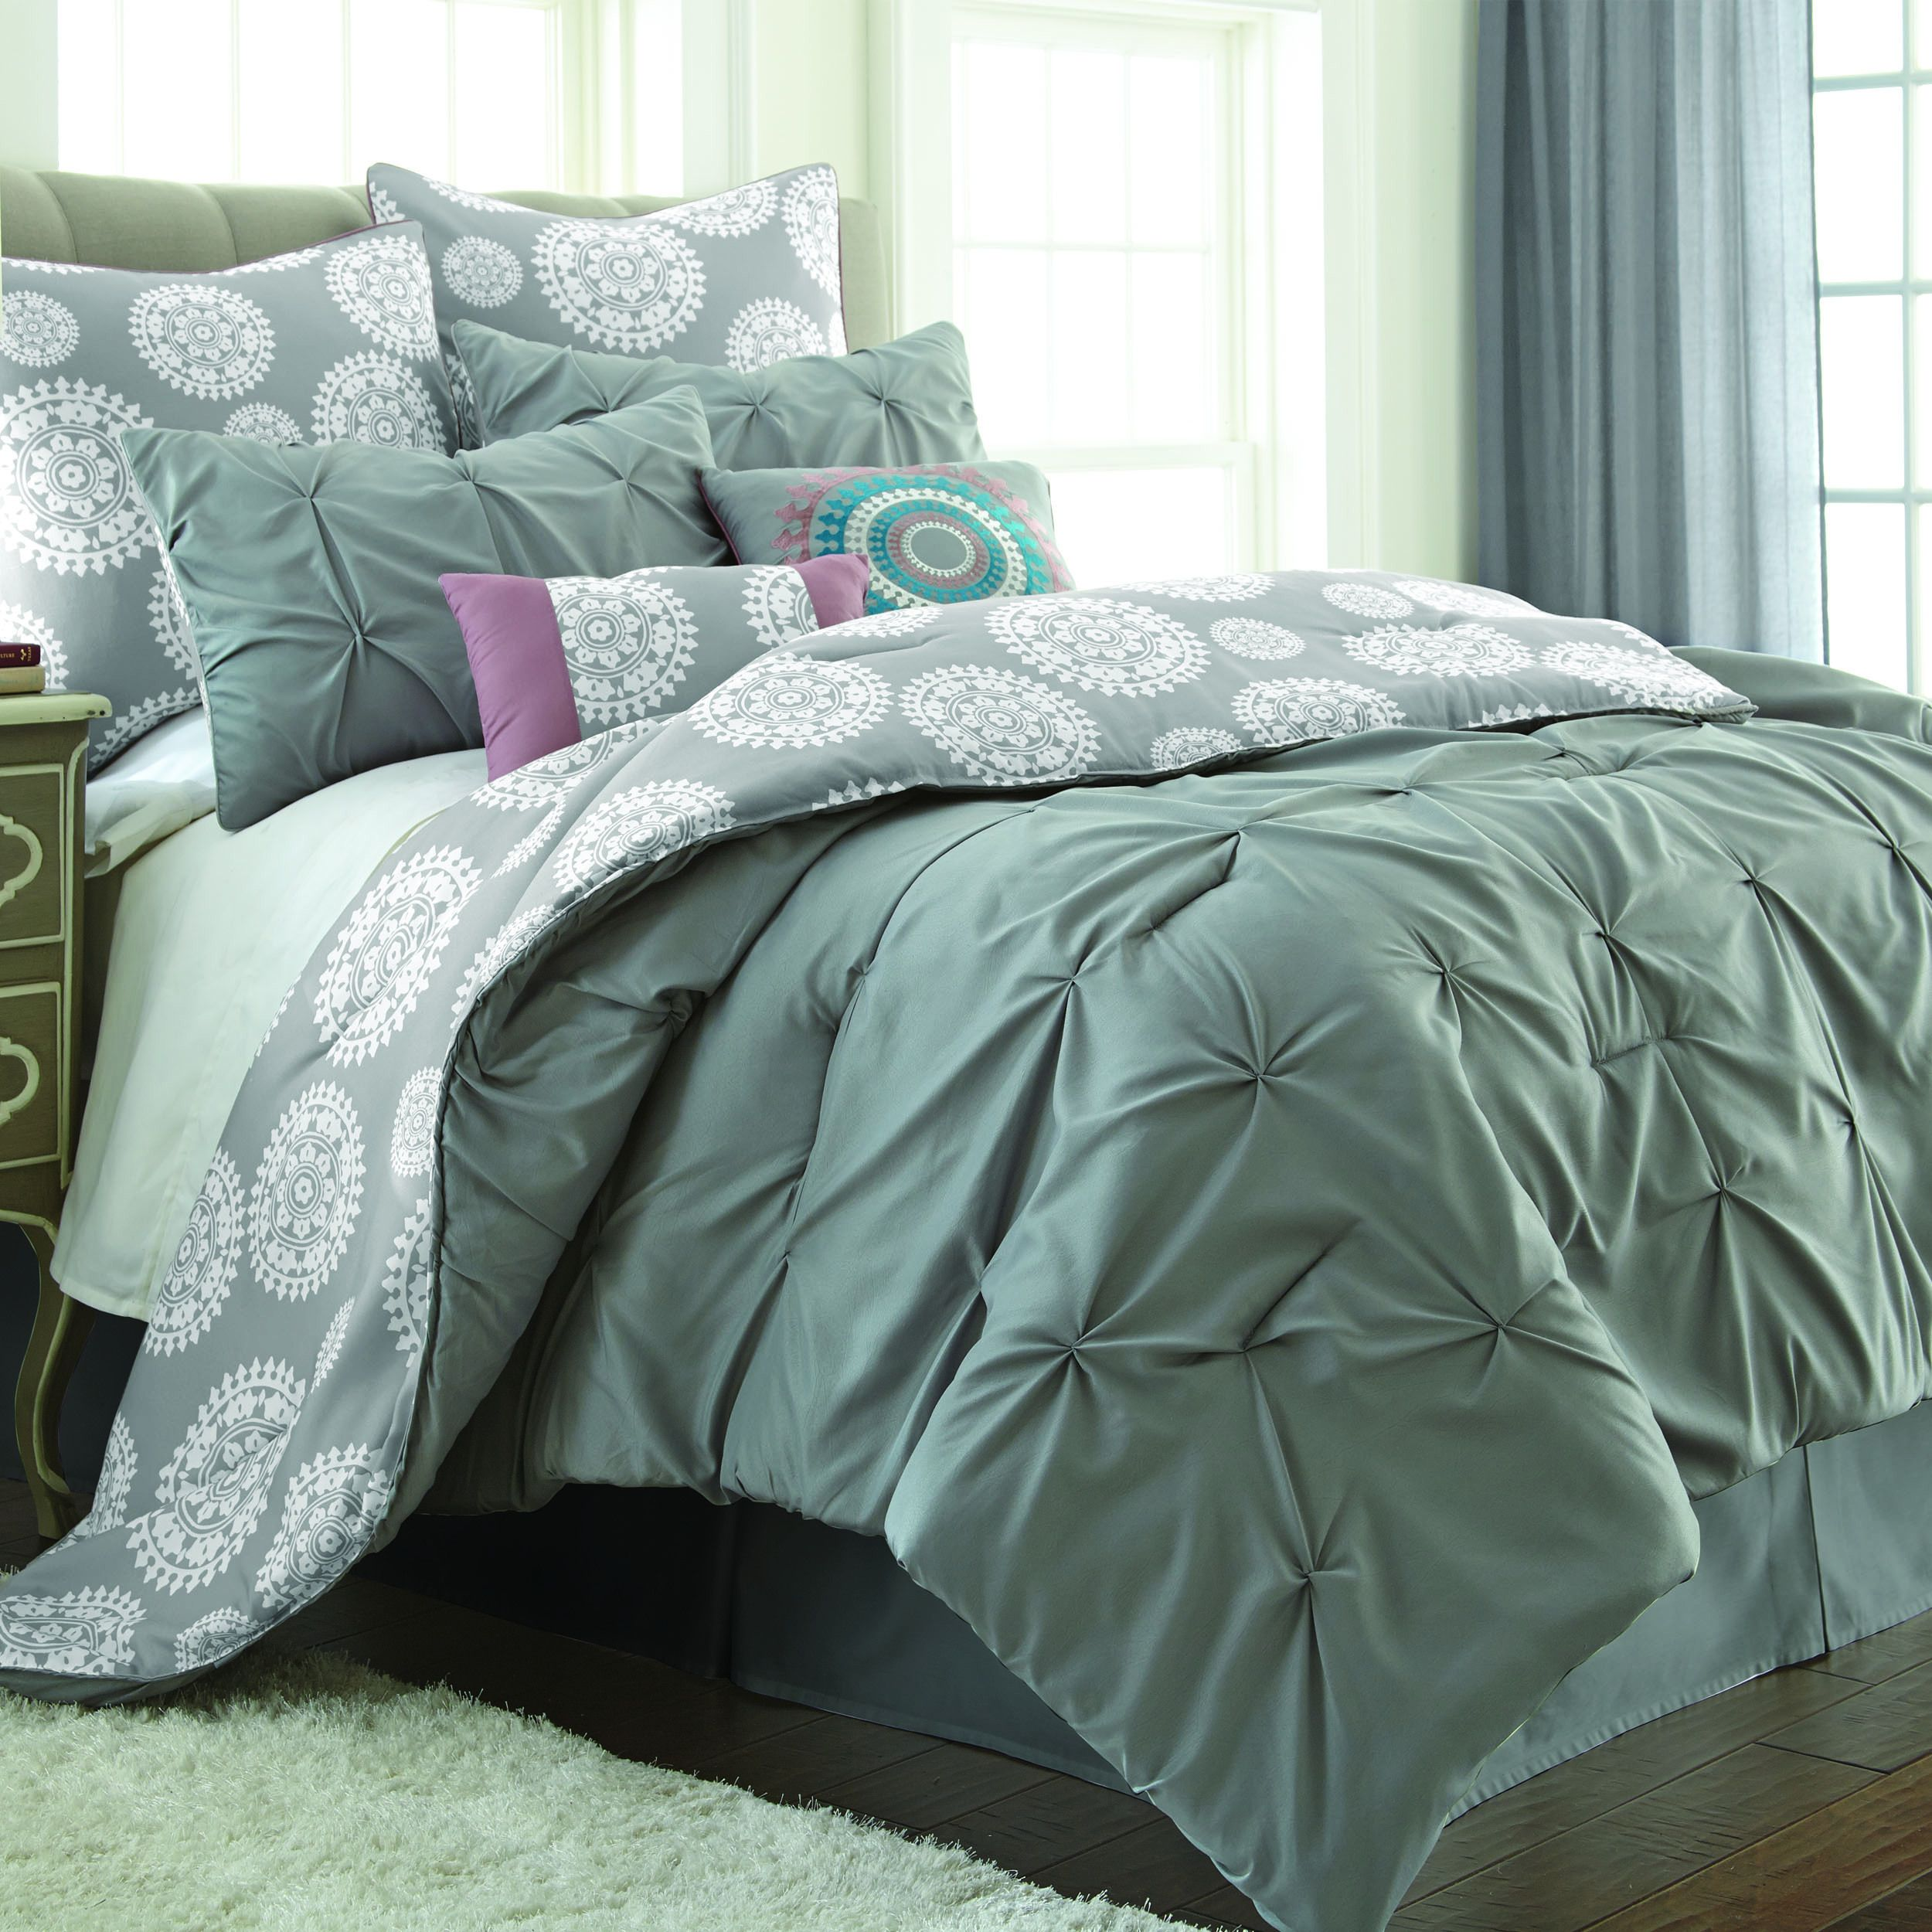 green bed sheets texture cotton texture chic and captivating this creative bedding is graced with bright decorative pillows for an textured green crinkle pattern reverses to whimsical floral